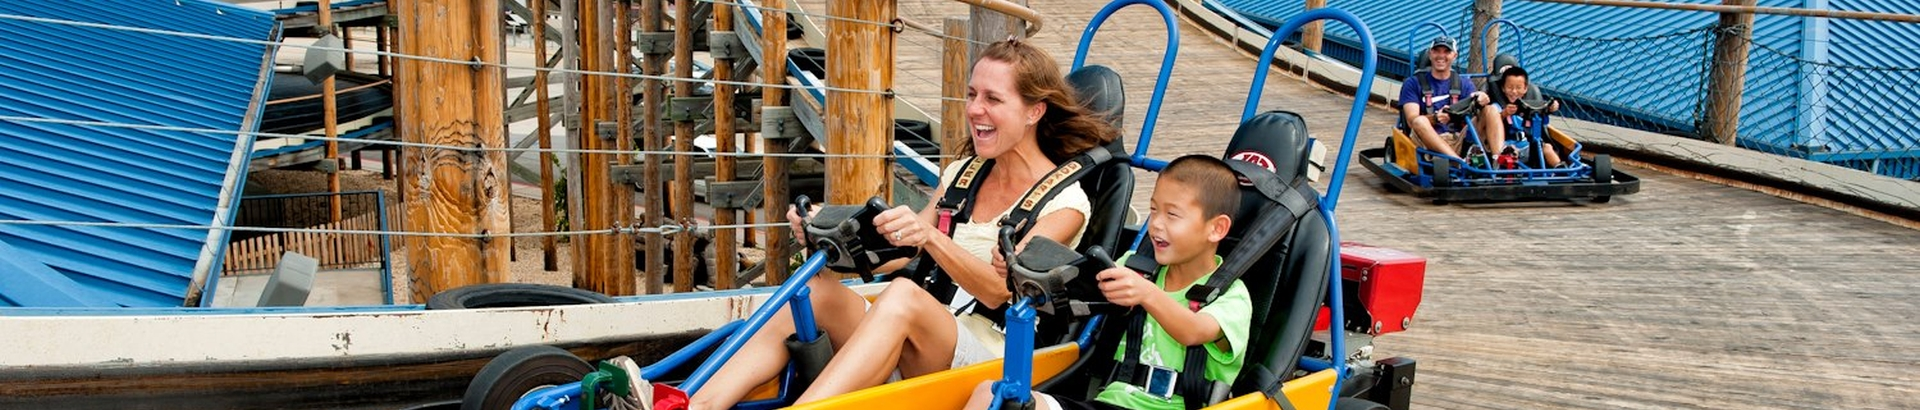 Branson Kids Attractions & Things To Do